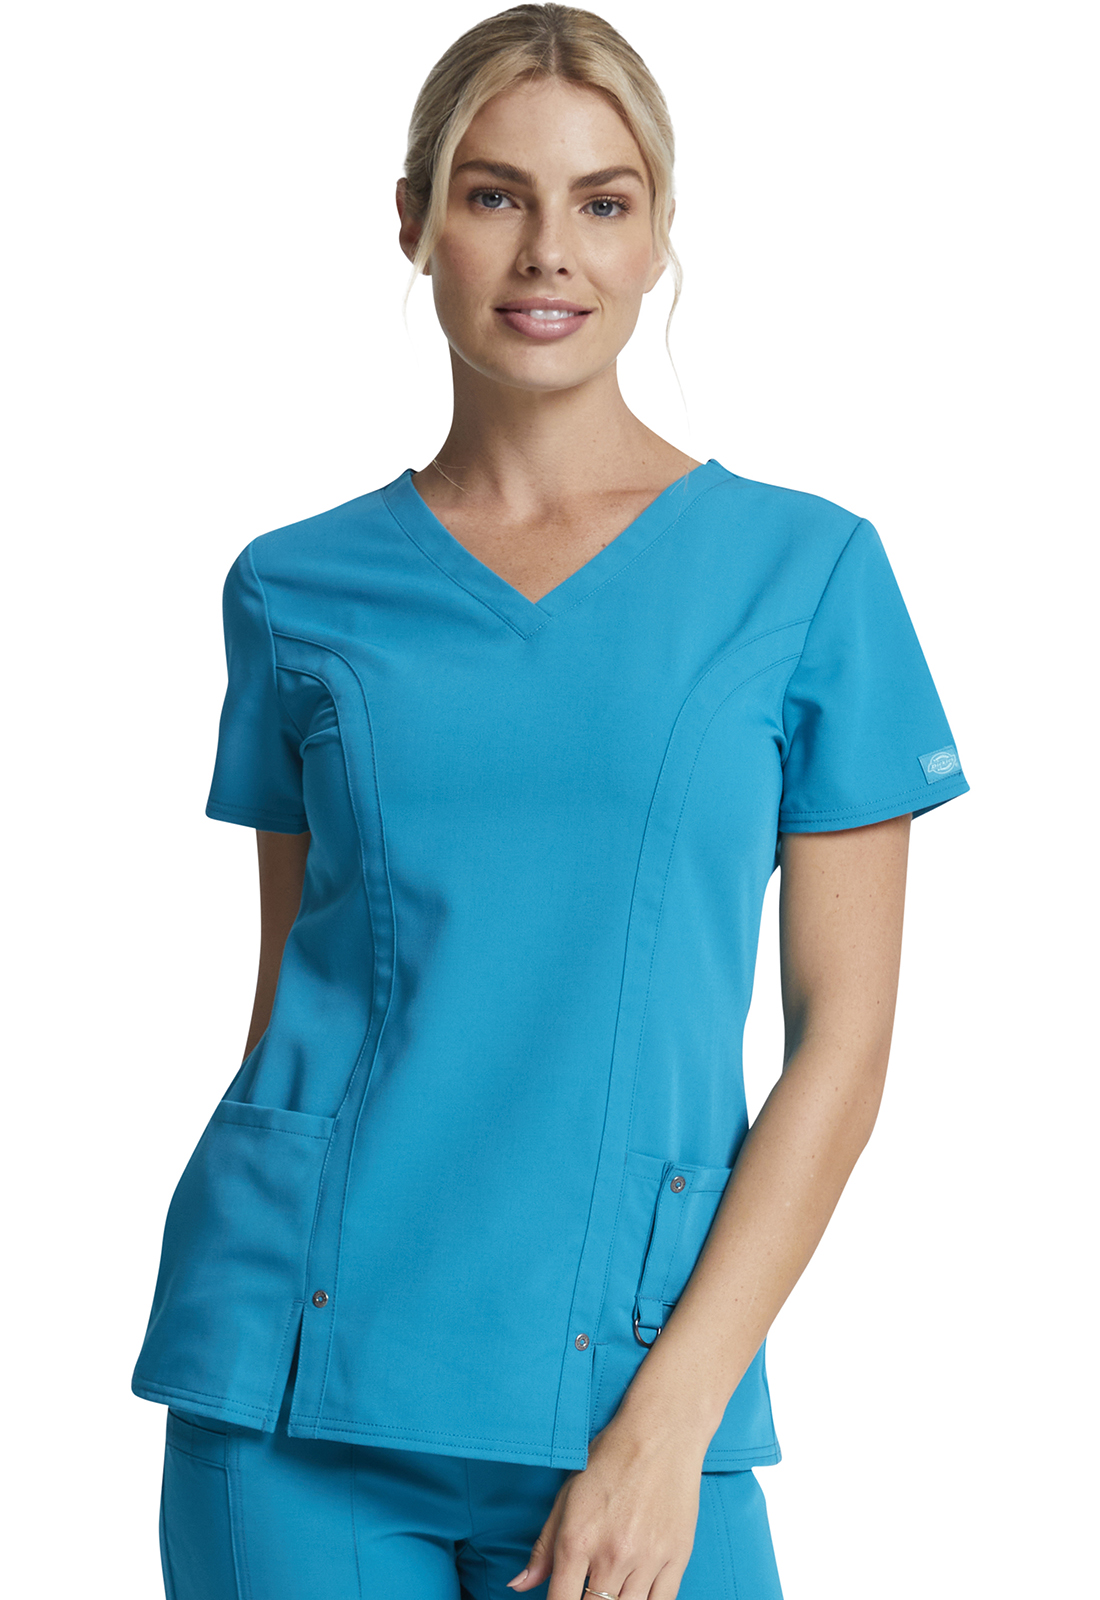 3e40f8ea3e3 Xtreme Stretch V-Neck Top in Teal 82851-DTLZ from Scrubs By Design